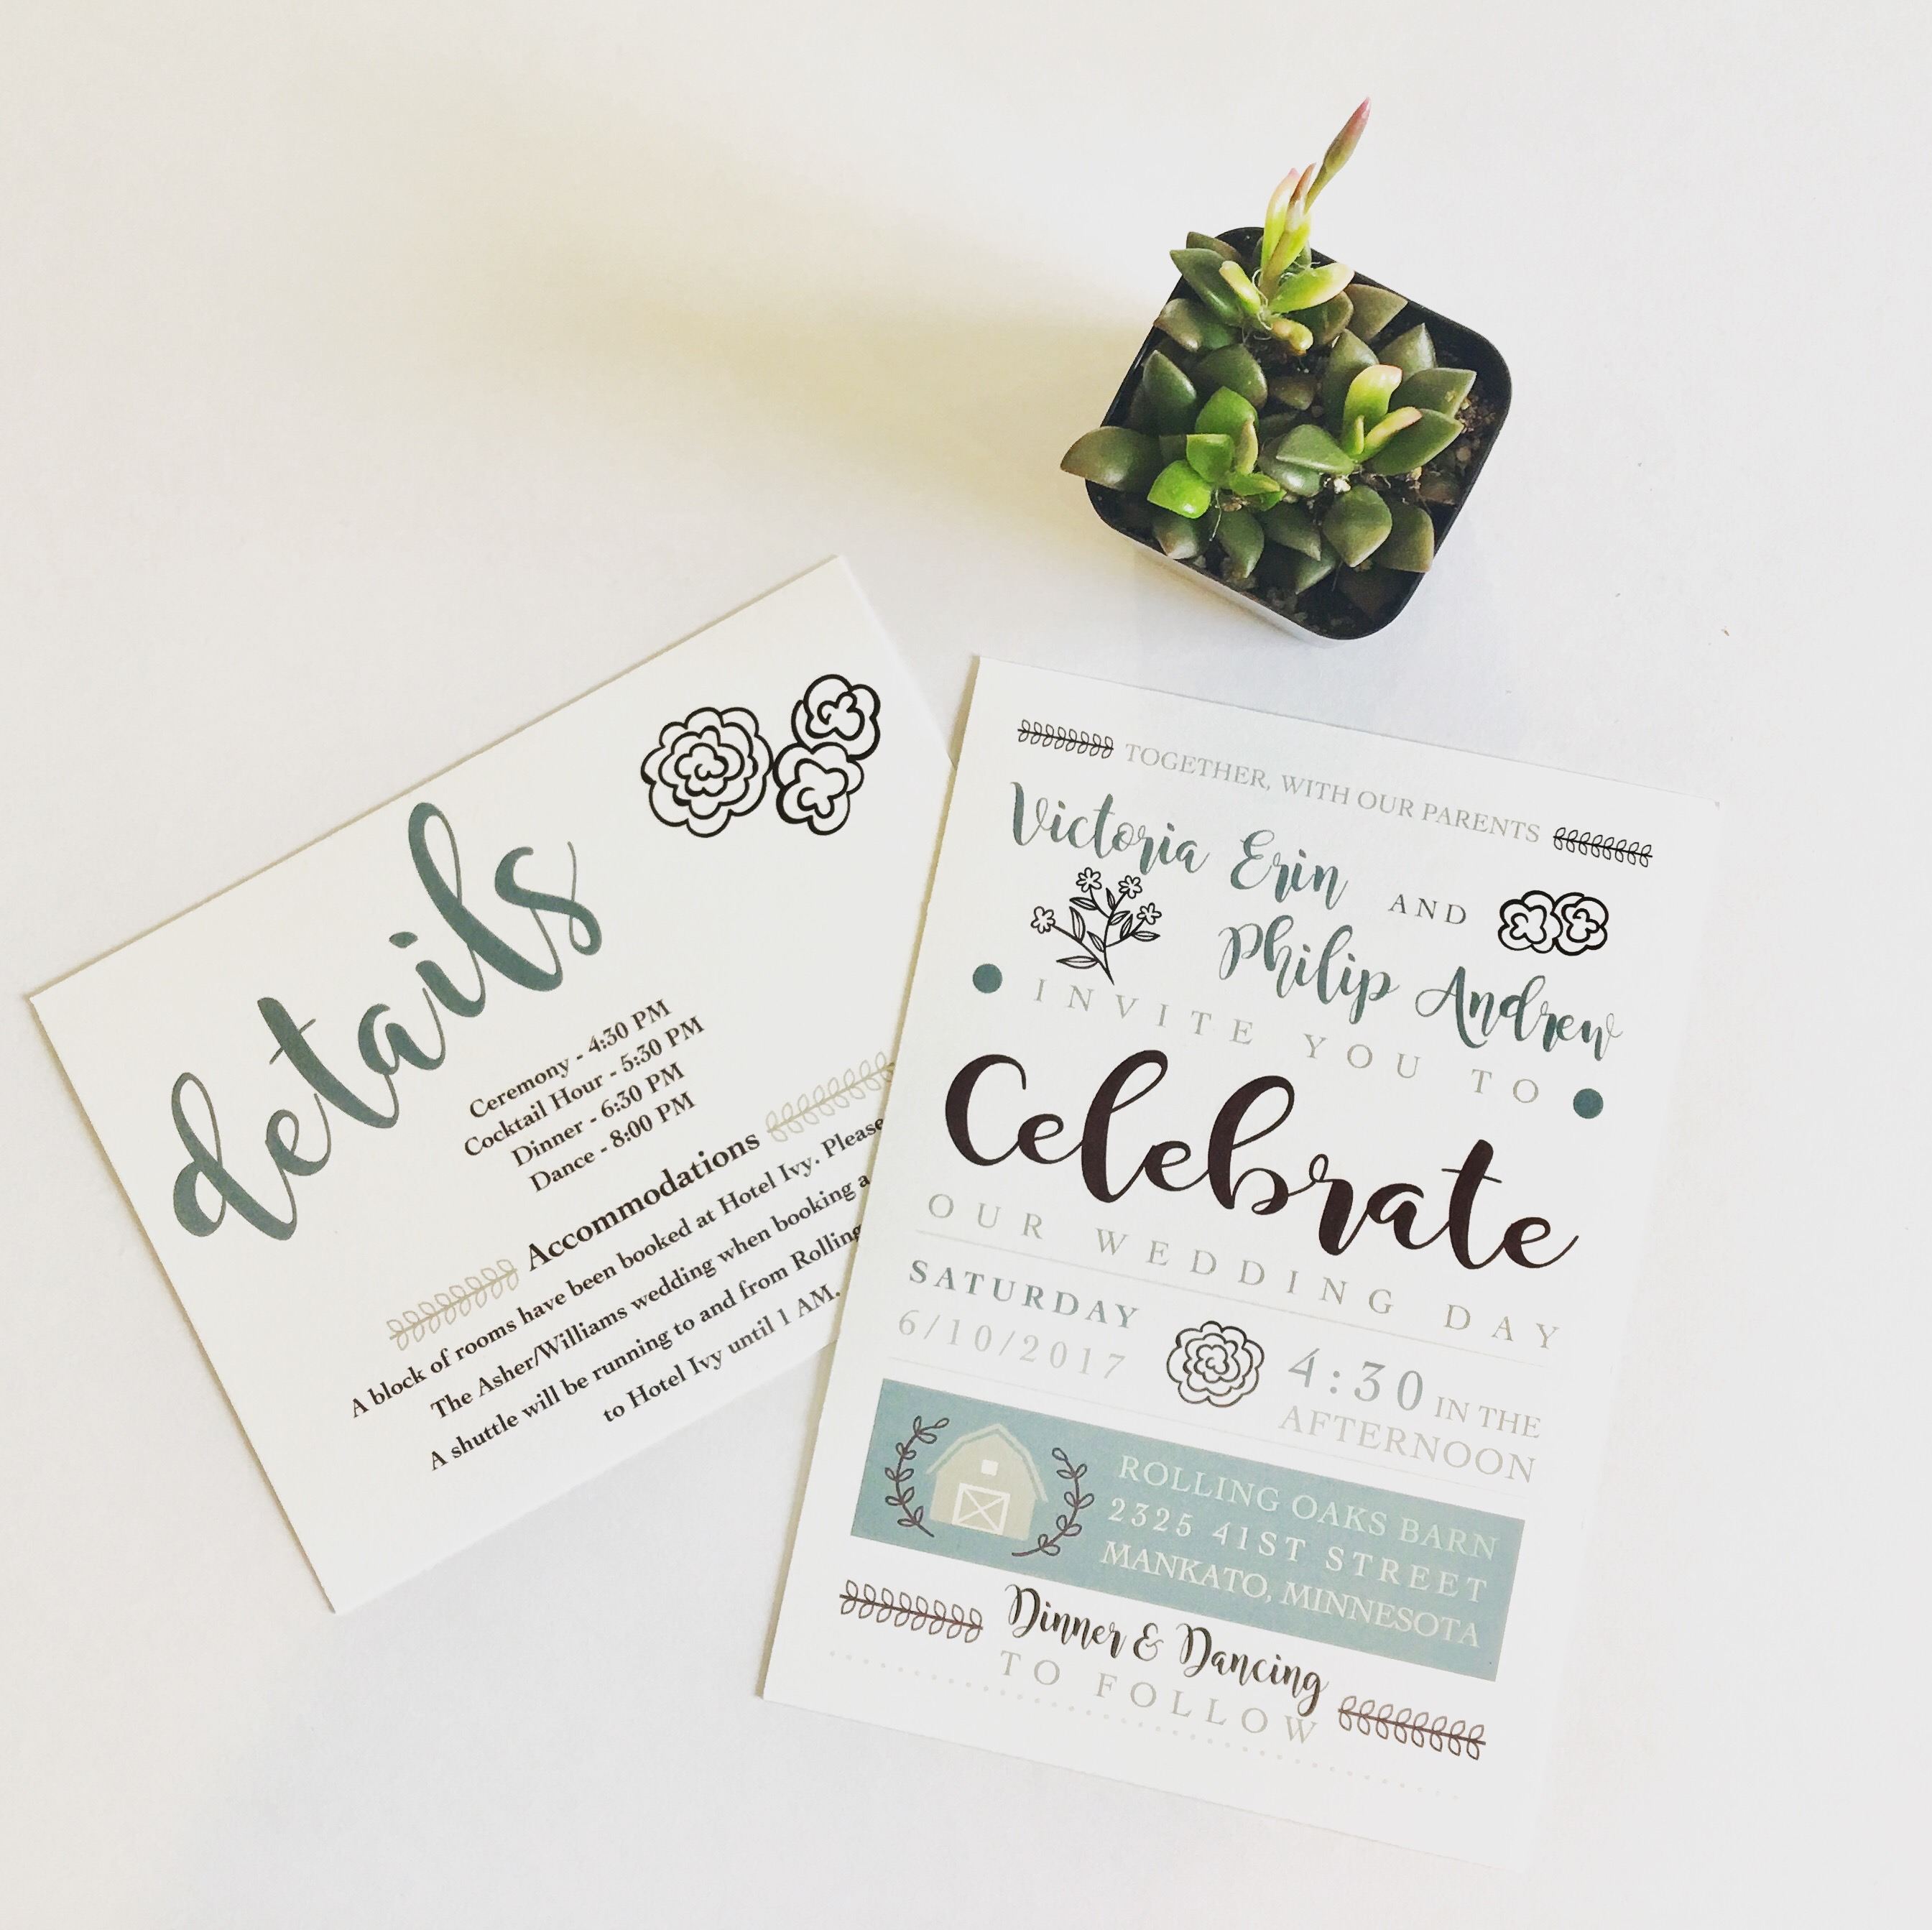 Wedding Invitation and Detail Card